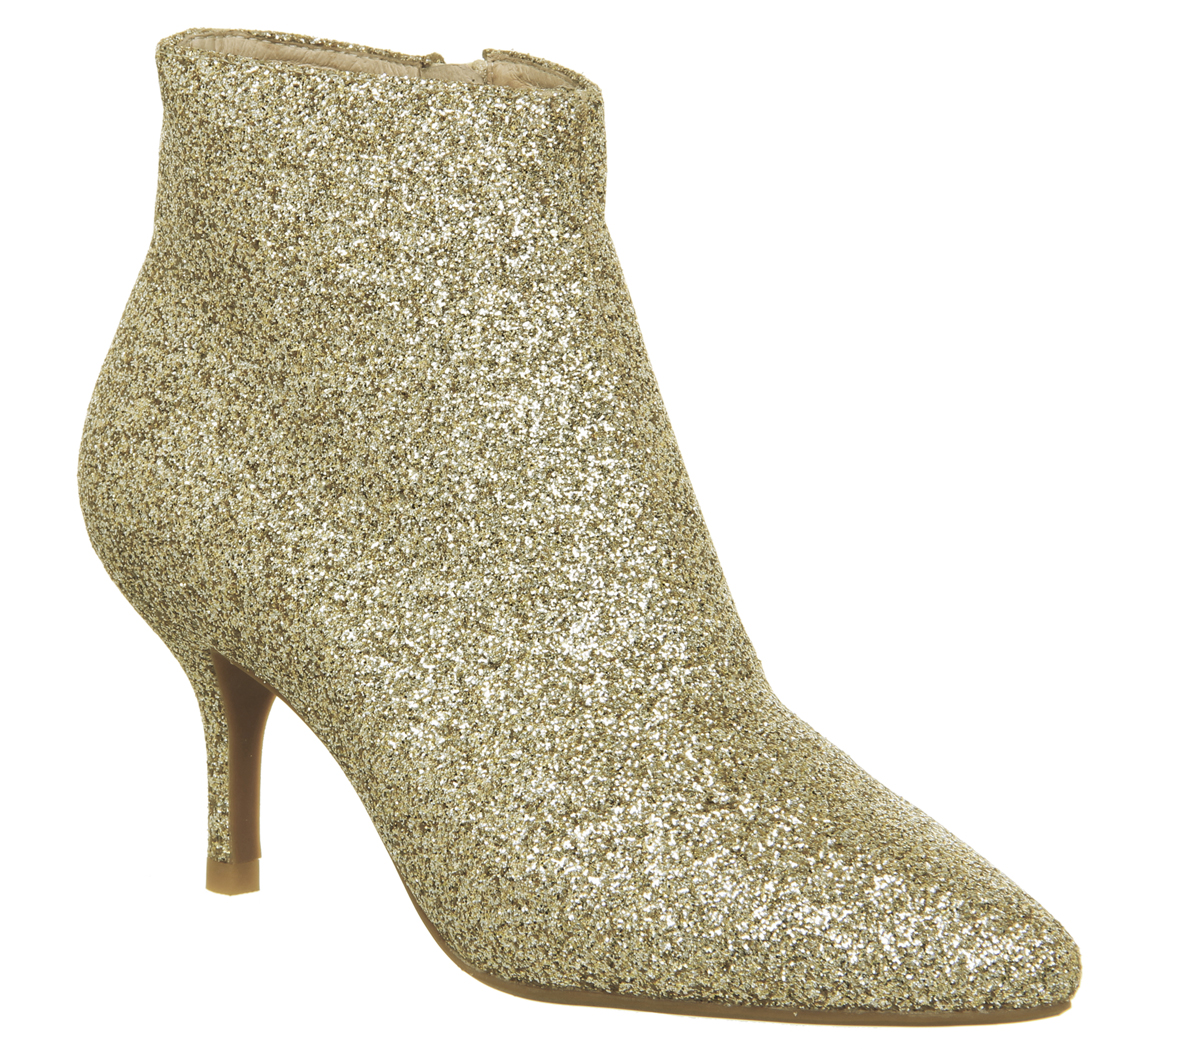 Femme Chaussure Abby l'ours Abby Chaussure bottines paillettes d'or 7b38e5